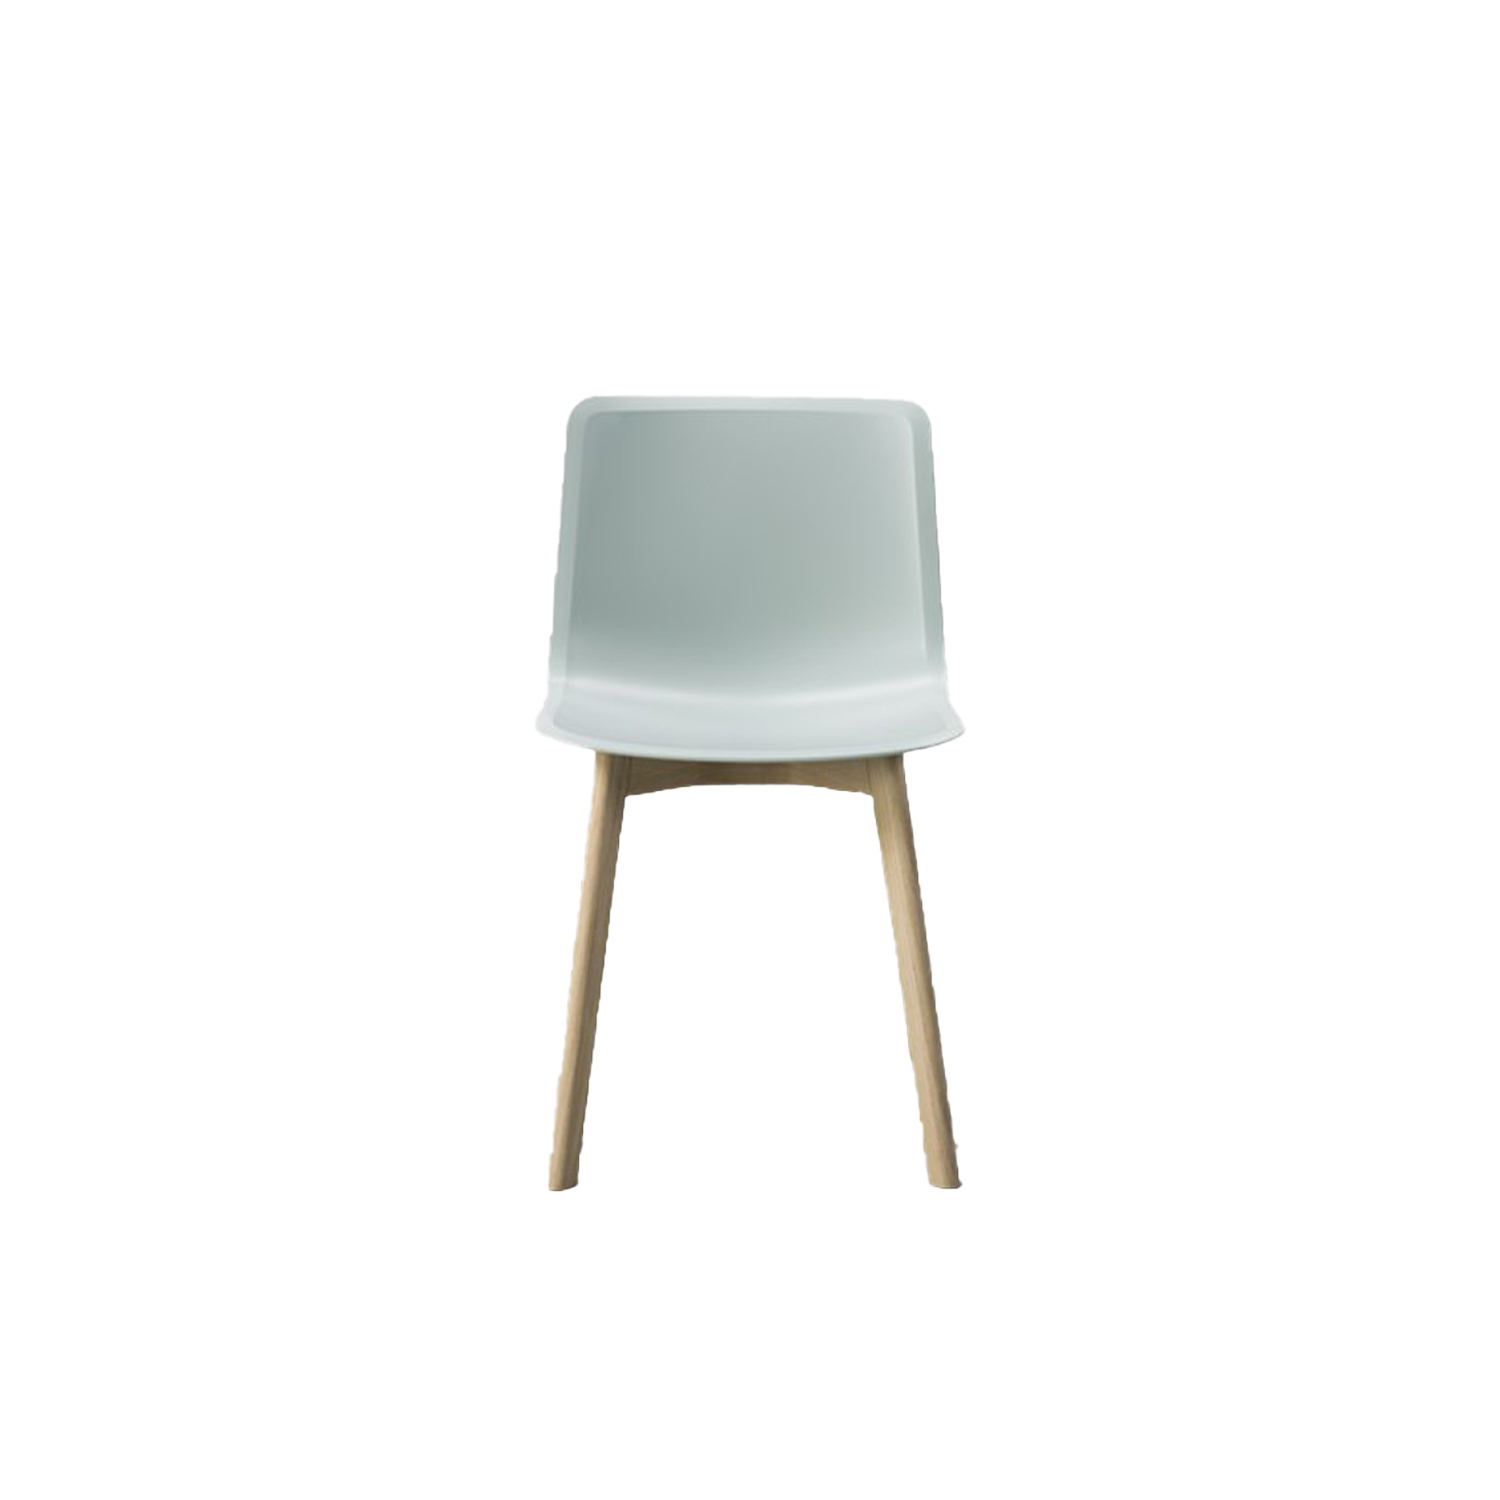 Pato Wood Base Chair - Pato is a carefully crafted chair in eco-friendly polypropylene. It can be tuned from basic to exclusive with optional upholstery. With the solid wood base Pato radiates a warm atmosphere in any environment.  Pato is a prime example of our focus on sustainability and protecting the environment, reflected in a chair that's 100% renewable and recyclable. All components can be incorporated into future furniture production, thus contributing to a circular economy by minimising the use of materials, resources, waste and pollution.   Merging traditional production methods with cutting-edge technology, Pato is a human-centric, highly versatile series of multi-purpose functional furniture that draws on our in-depth experience with materials, immaculate detailing and heritage of fine craftsmanship. Allowing us to apply our high standards of texture, finish and carpentry techniques to an array of materials in addition to wood for products aimed at a mass market.   With its clean lines and curves, Pato echoes the ethos of Danish-Icelandic design duo Welling/Ludvik. Demonstrating their belief that good design has the ability to be interesting, even when reduced to its most simple form. Where anything extraneous is eliminated and every detail has a purpose.   Together we spent nearly three years developing the shell structure to have a soft surface that's also wear and tear resistant. Enhancing the chair's ability to optimally conform to the user's body is a subtle beveled edge. A technique from classic cabinetmaking, which gives the chair a sense of handcrafted finesse. Each Pato is detailed and finished by hand by our highly skilled crafts people, who refine the beveled edge and the silky, resilient surface. Setting a new standard for the execution and finish of polypropylene.   Since the success of its initial launch, we've expanded Pato into an extensive collection of variants, featuring armchairs, barstools, office swivel chairs and a long list of mor